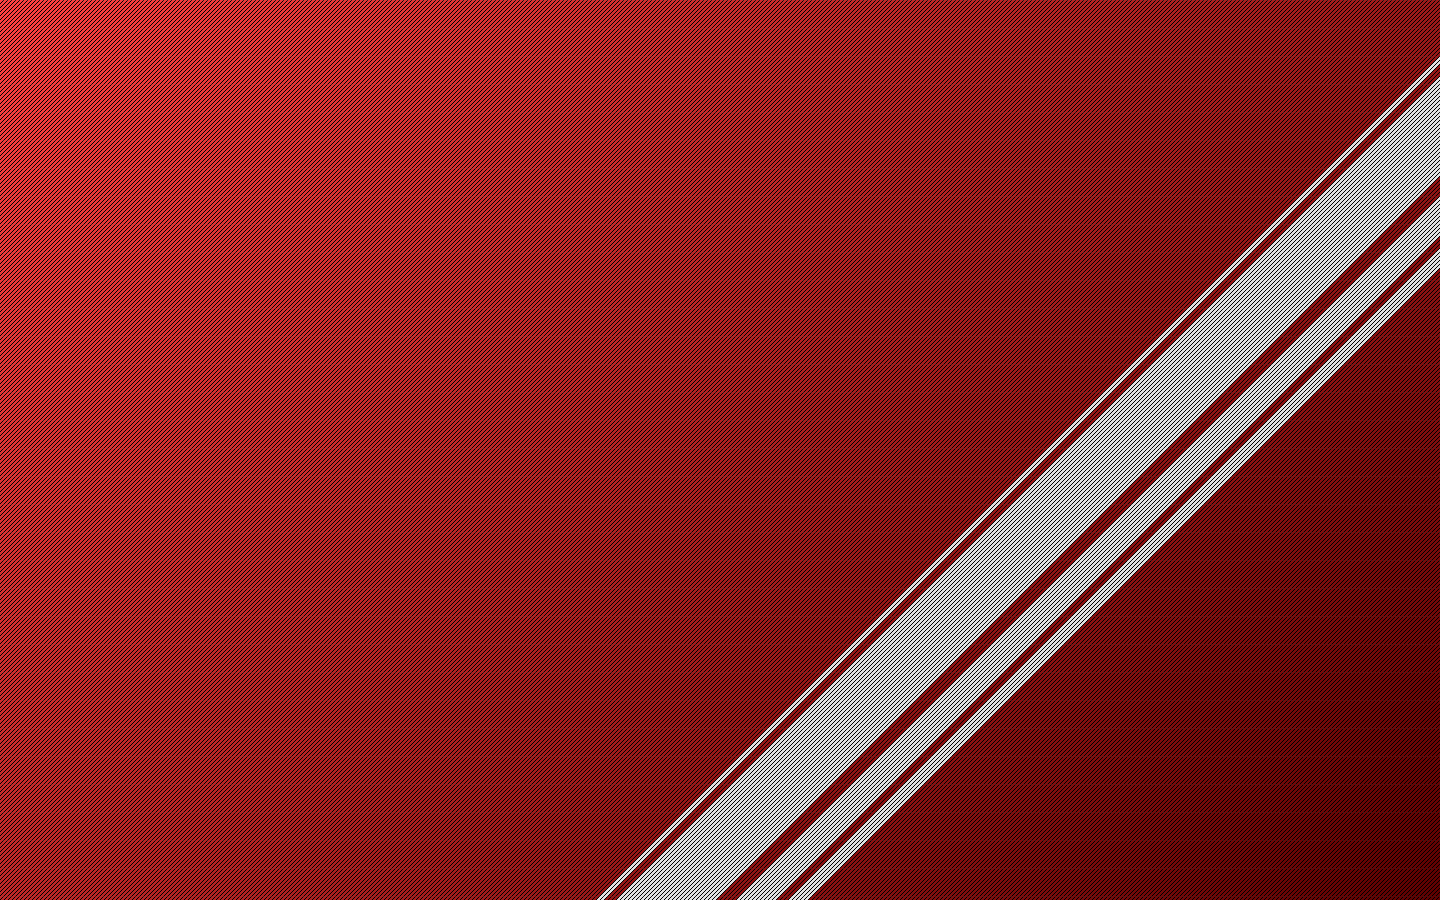 Minimal Lines Red by bmartinson13